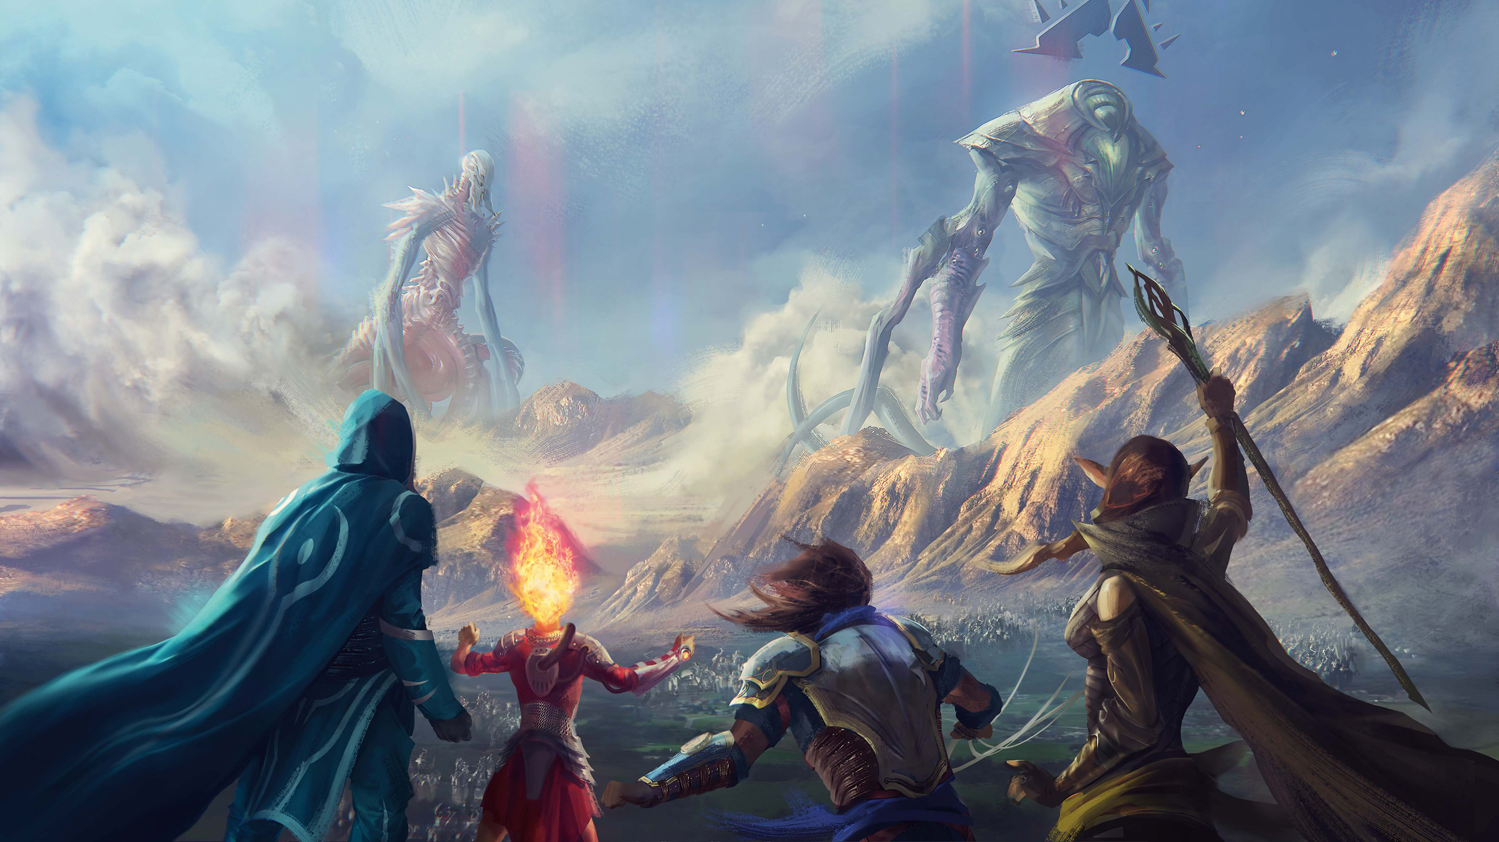 Magic: The Gathering Is So Complex It Could Stump A Computer